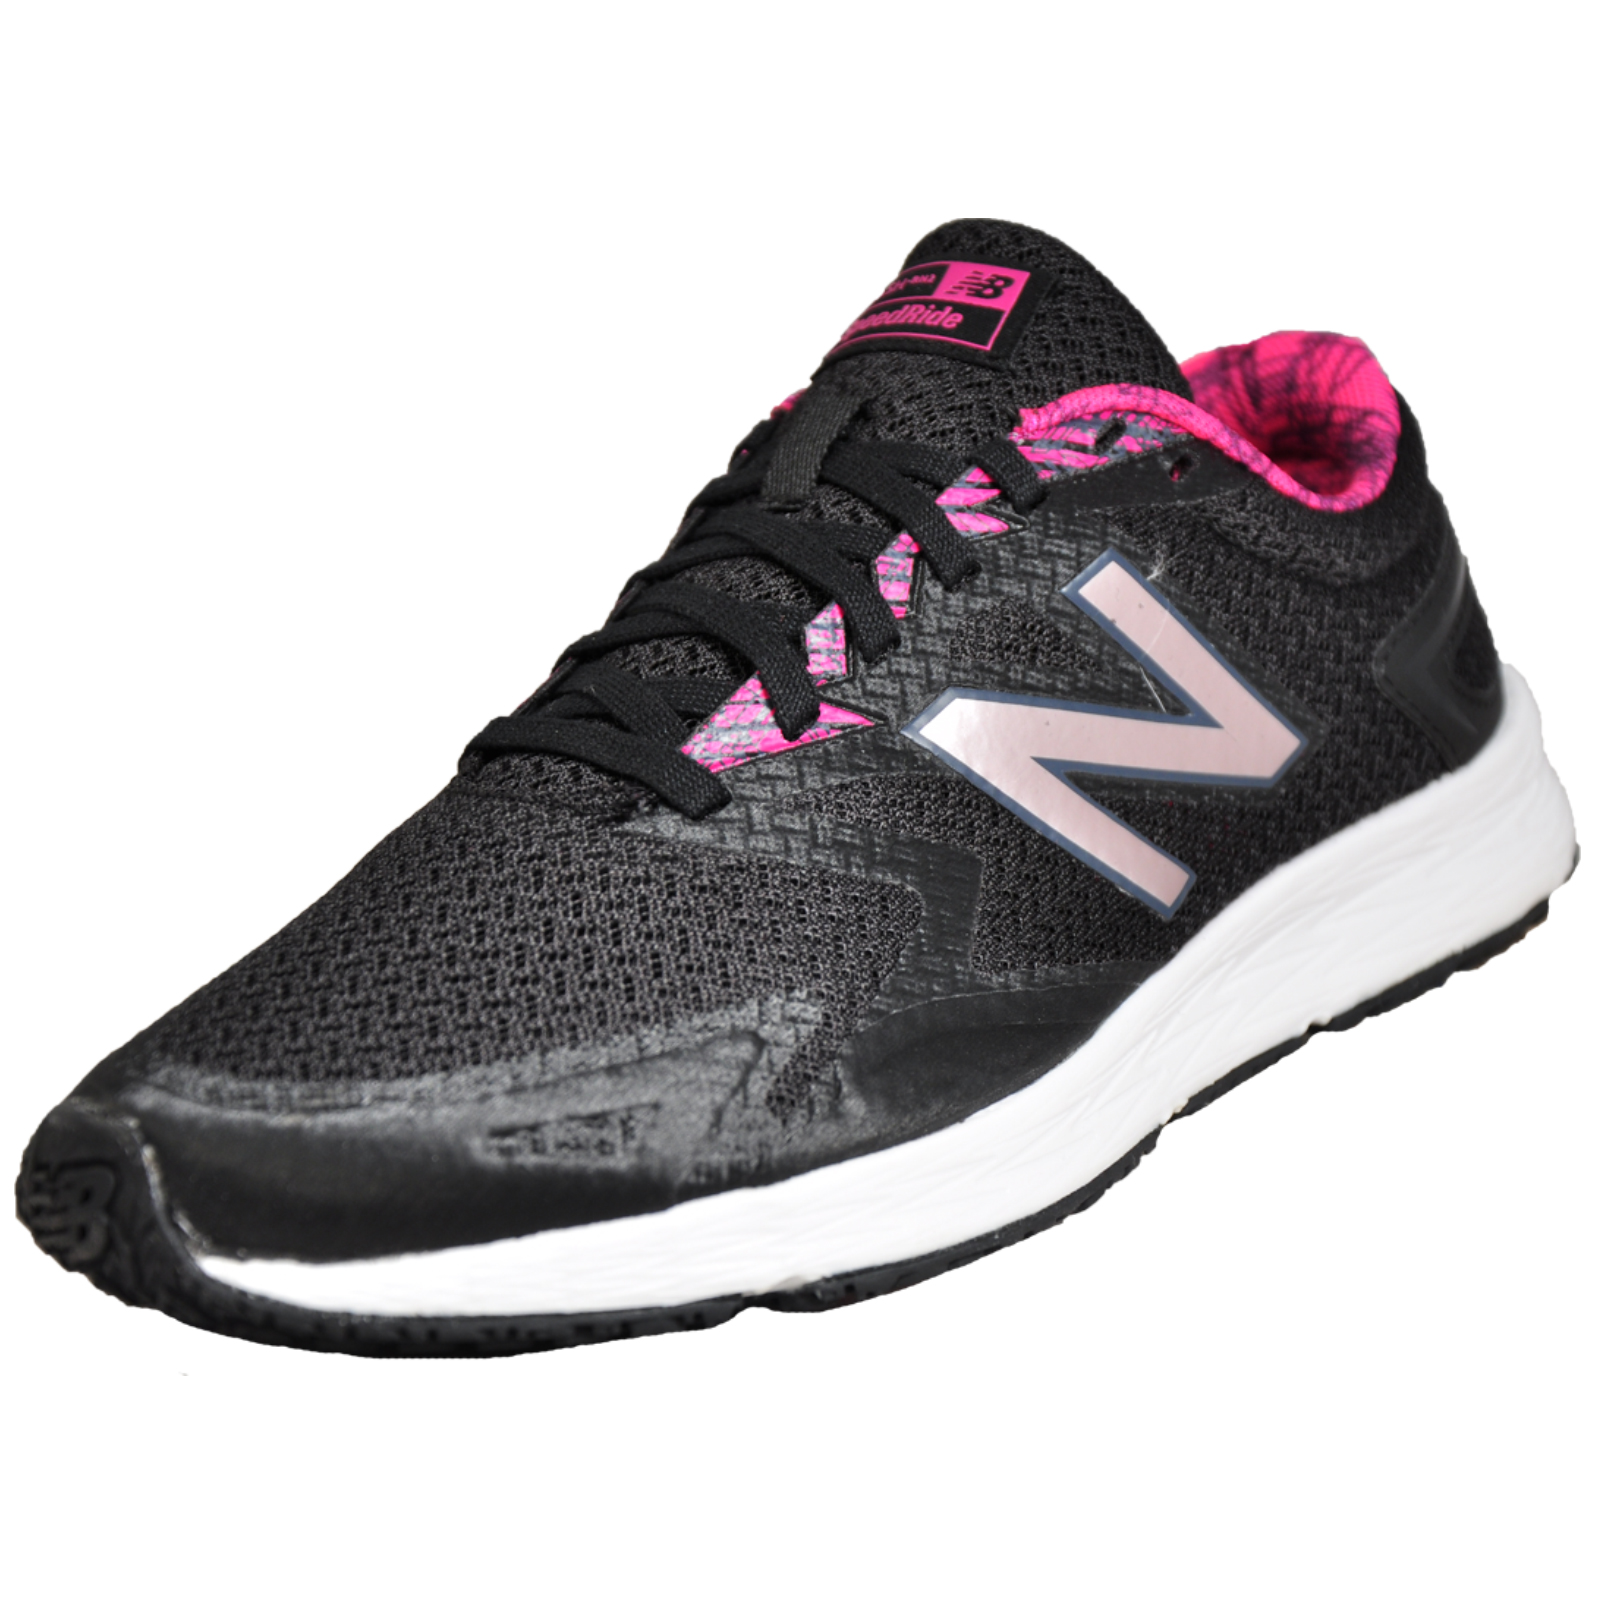 Details about New Balance Flash-Rn 2 Women s Running Shoes Gym Fitness  Trainers Black 8536e9086d9